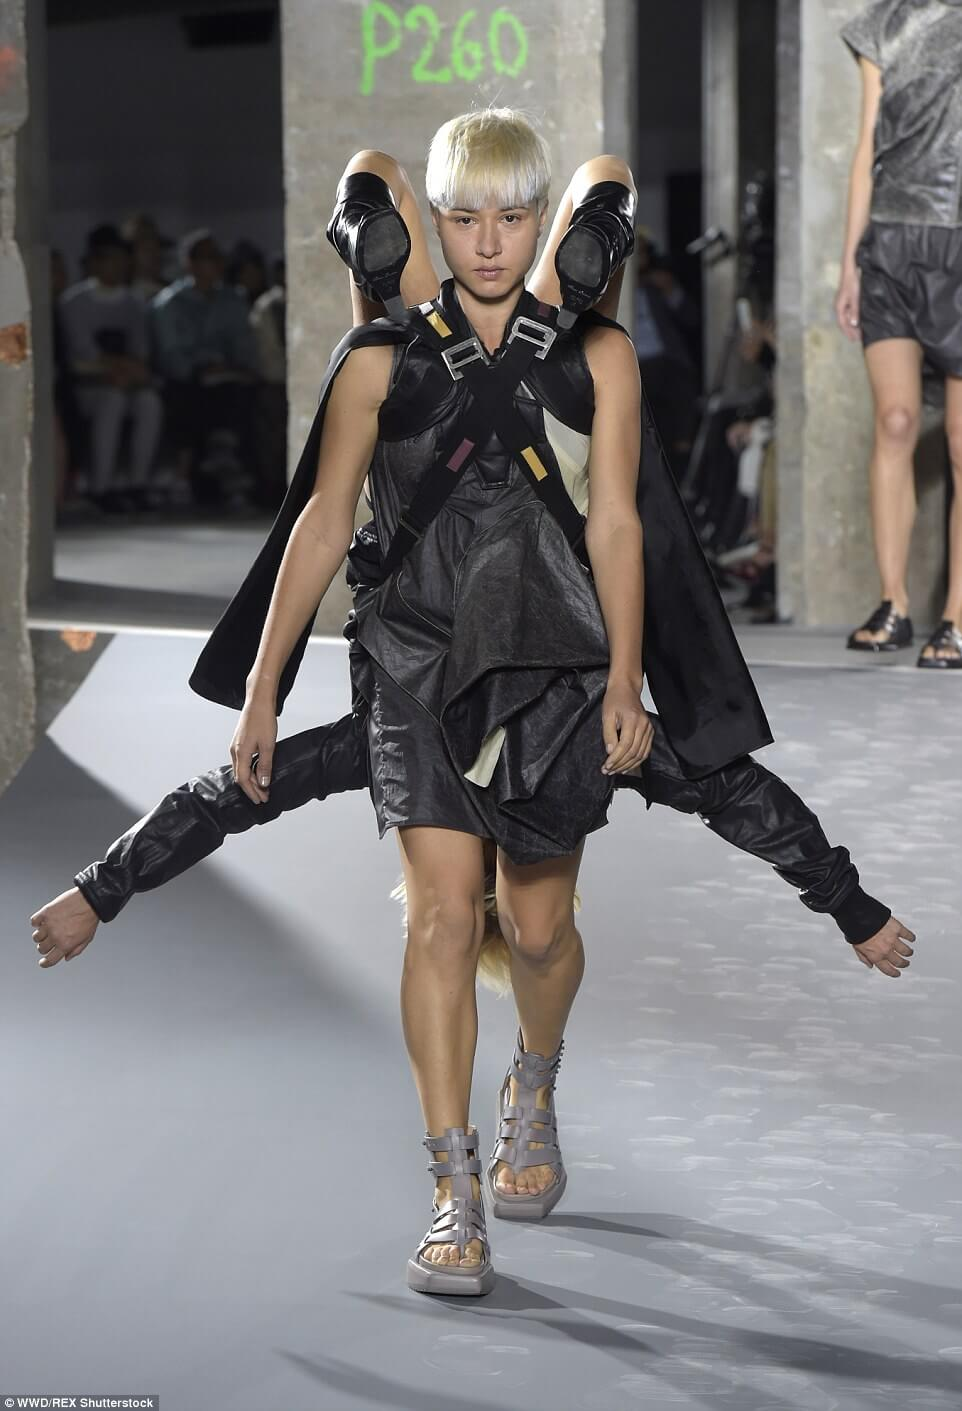 268b50dfe4bf6b8253322CFBD7B700000578-3256609-In_a_statement_released_after_the_presentation_Rick_Owens_explai-a-19_1443769103079.jpg